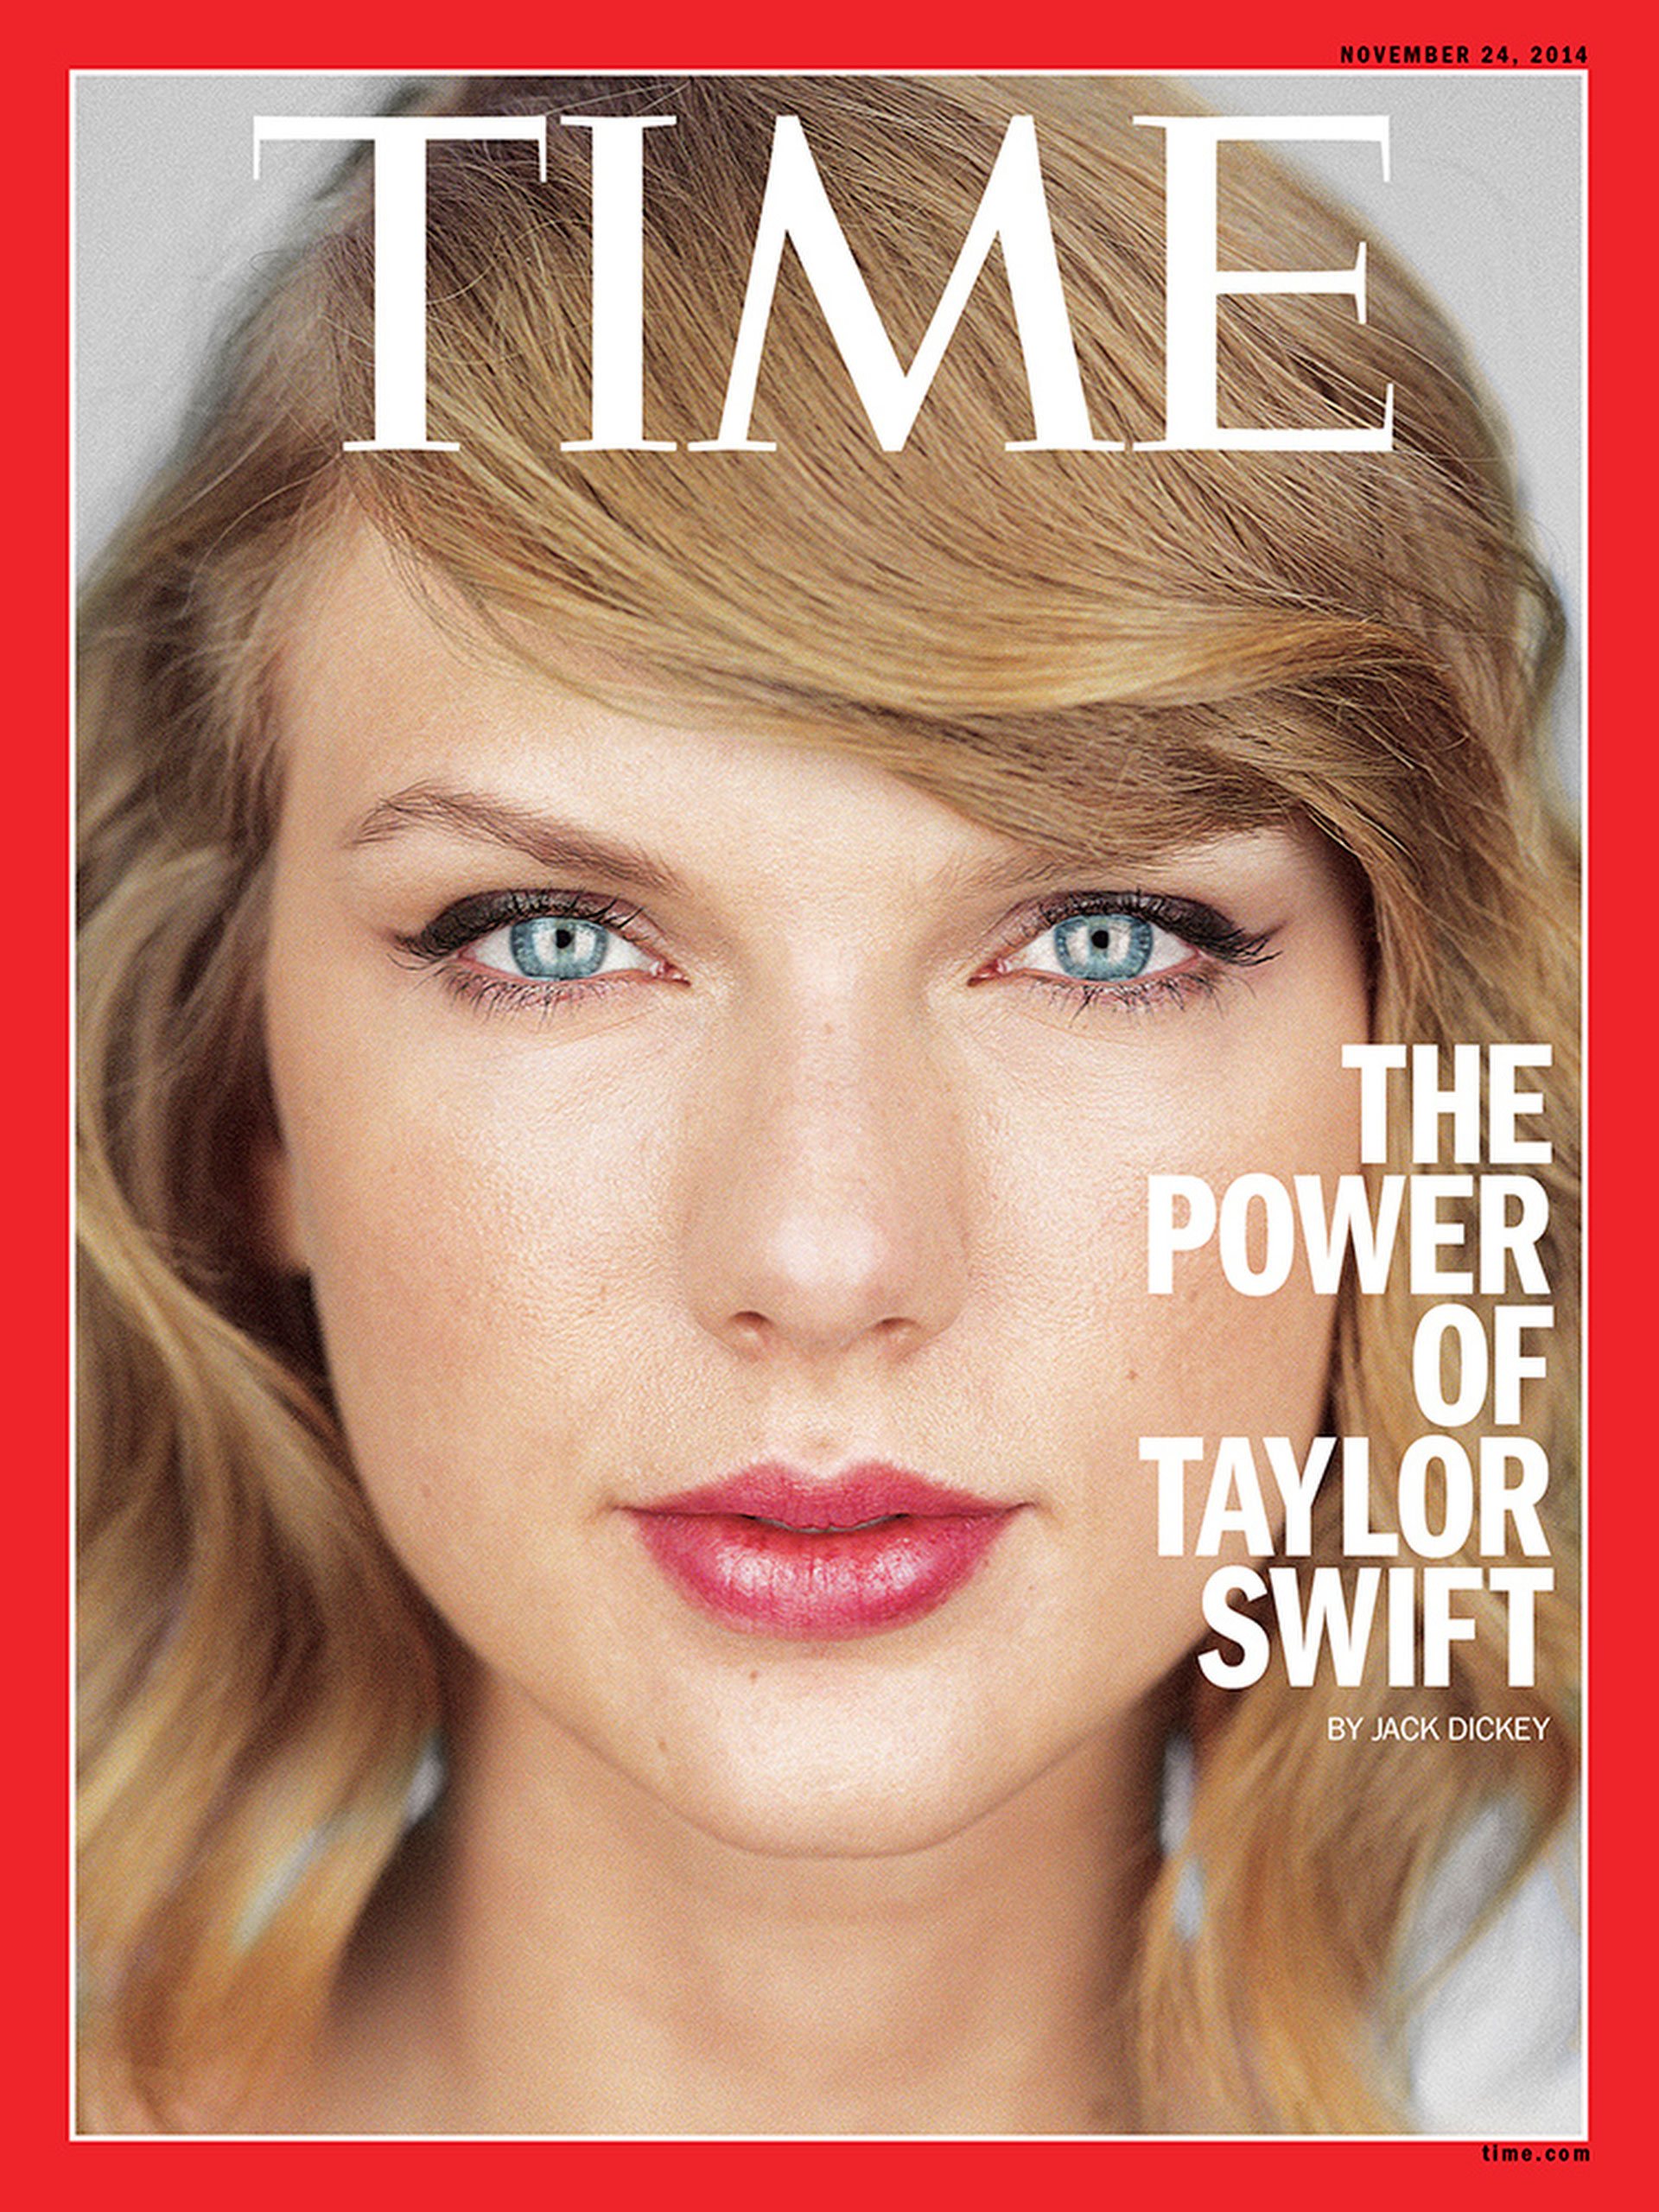 The Nov. 24, 2014 cover of TIME.